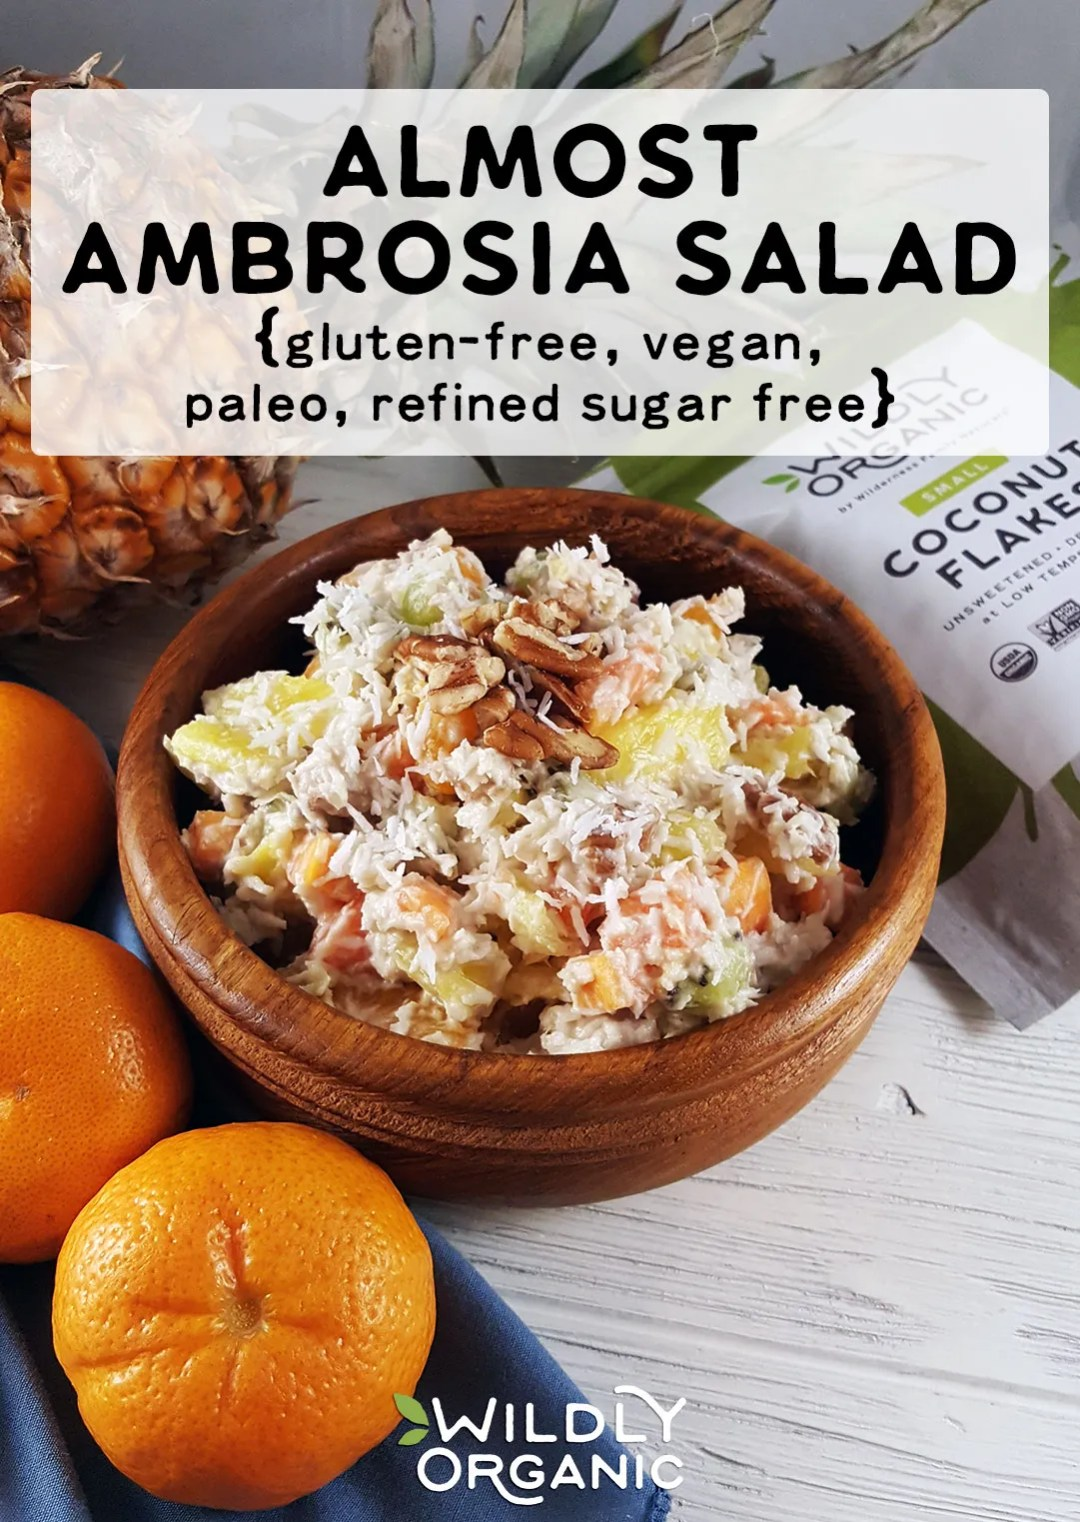 Photo of Almost Ambrosia Salad – Ambrosia Salad is a staple at many family gatherings. Creamy, fruity, coconutty goodness, the whole family will love this fresh and healthy version of Ambrosia Salad using just fruit, vegan whipped cream, nuts and no refined sugars! Take it to your next potluck or BBQ this summer!